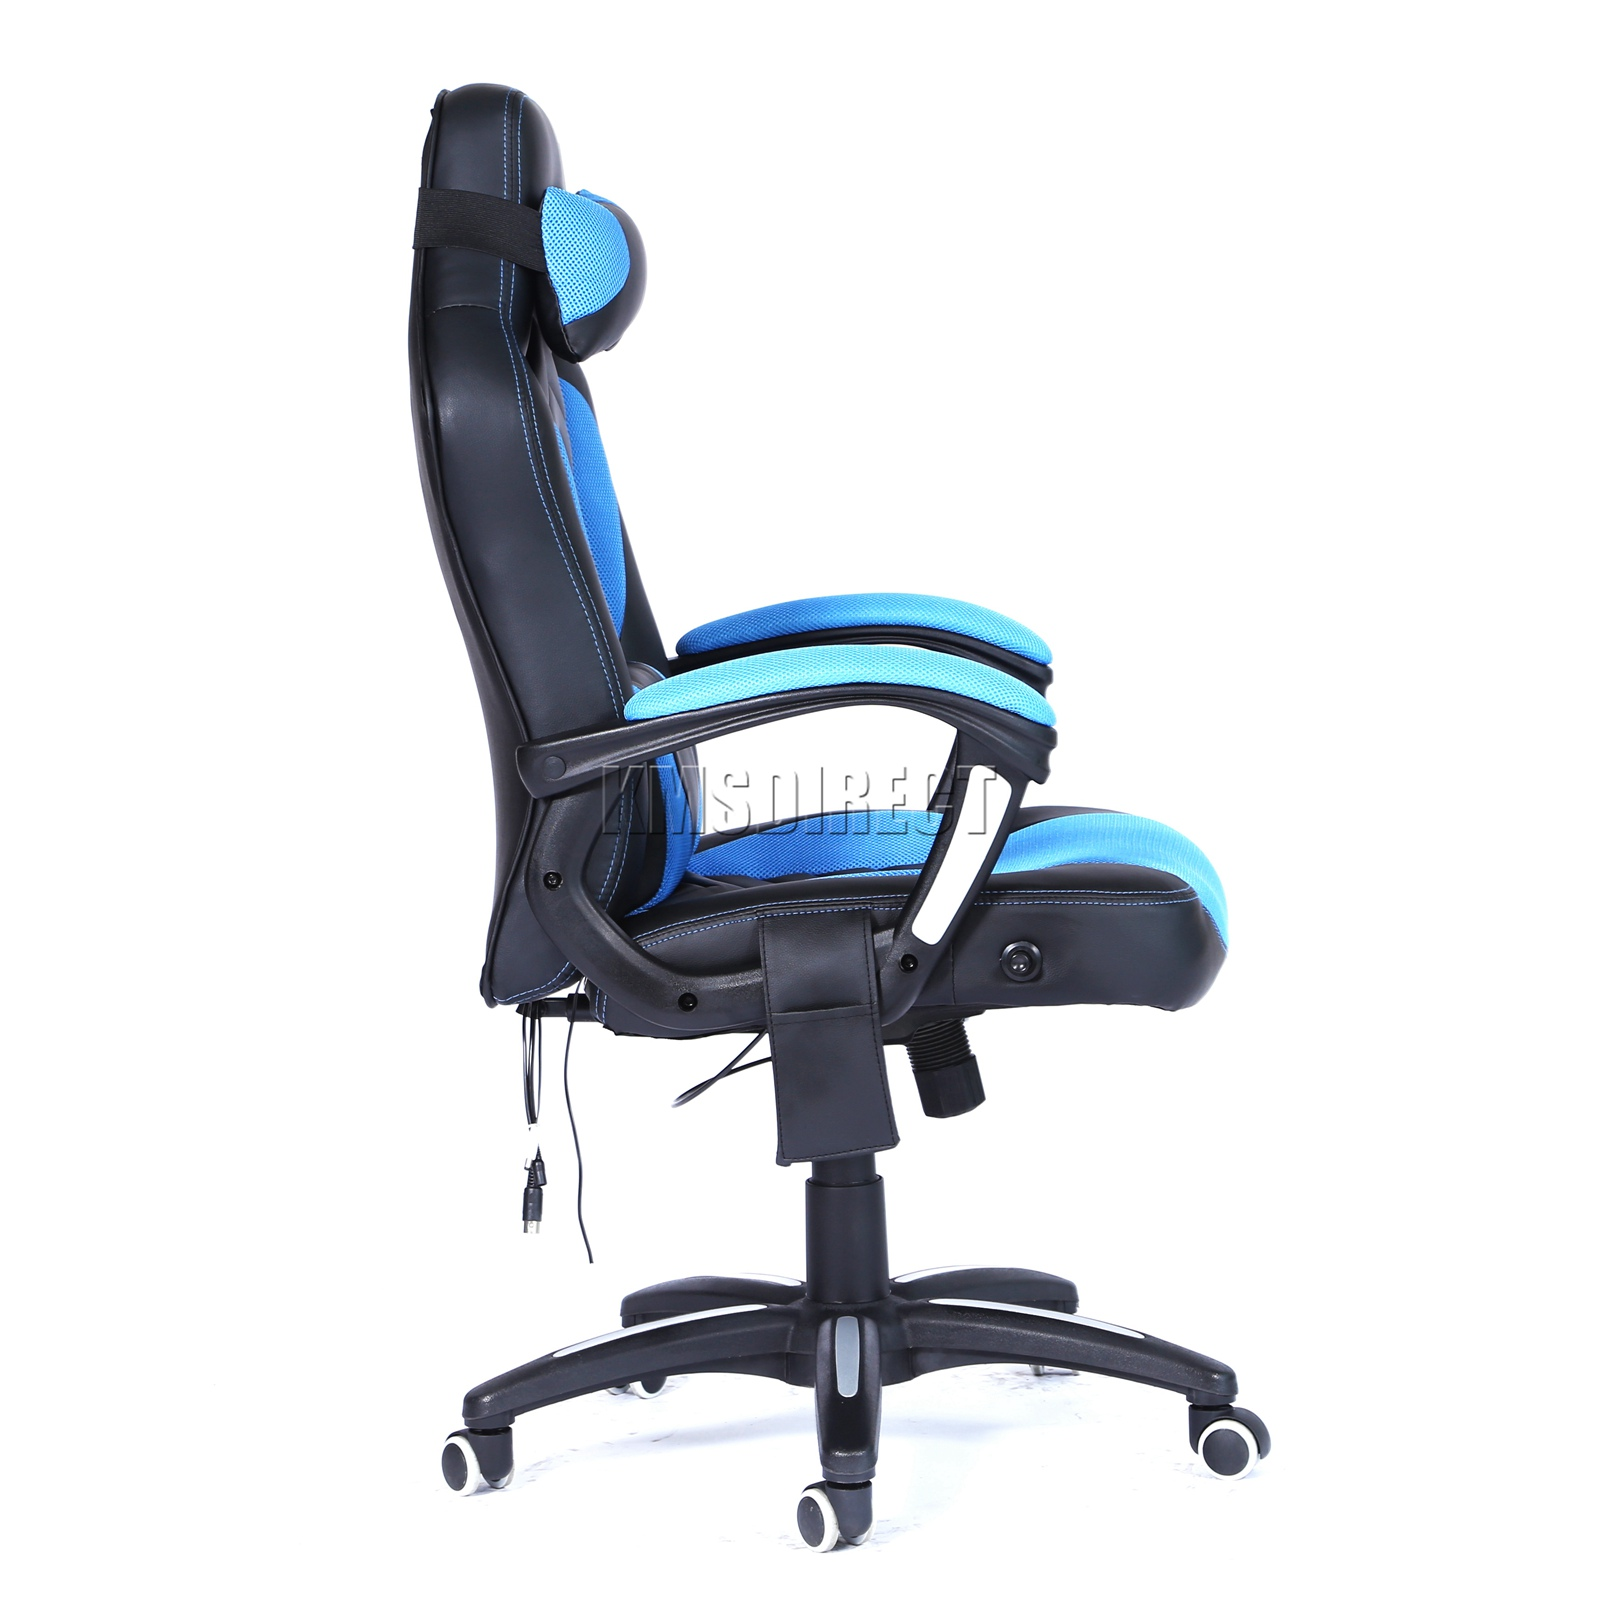 WestWood-Heated-Massage-Office-Chair-Gaming-amp-Computer-Recliner-Swivel-MC09 thumbnail 16